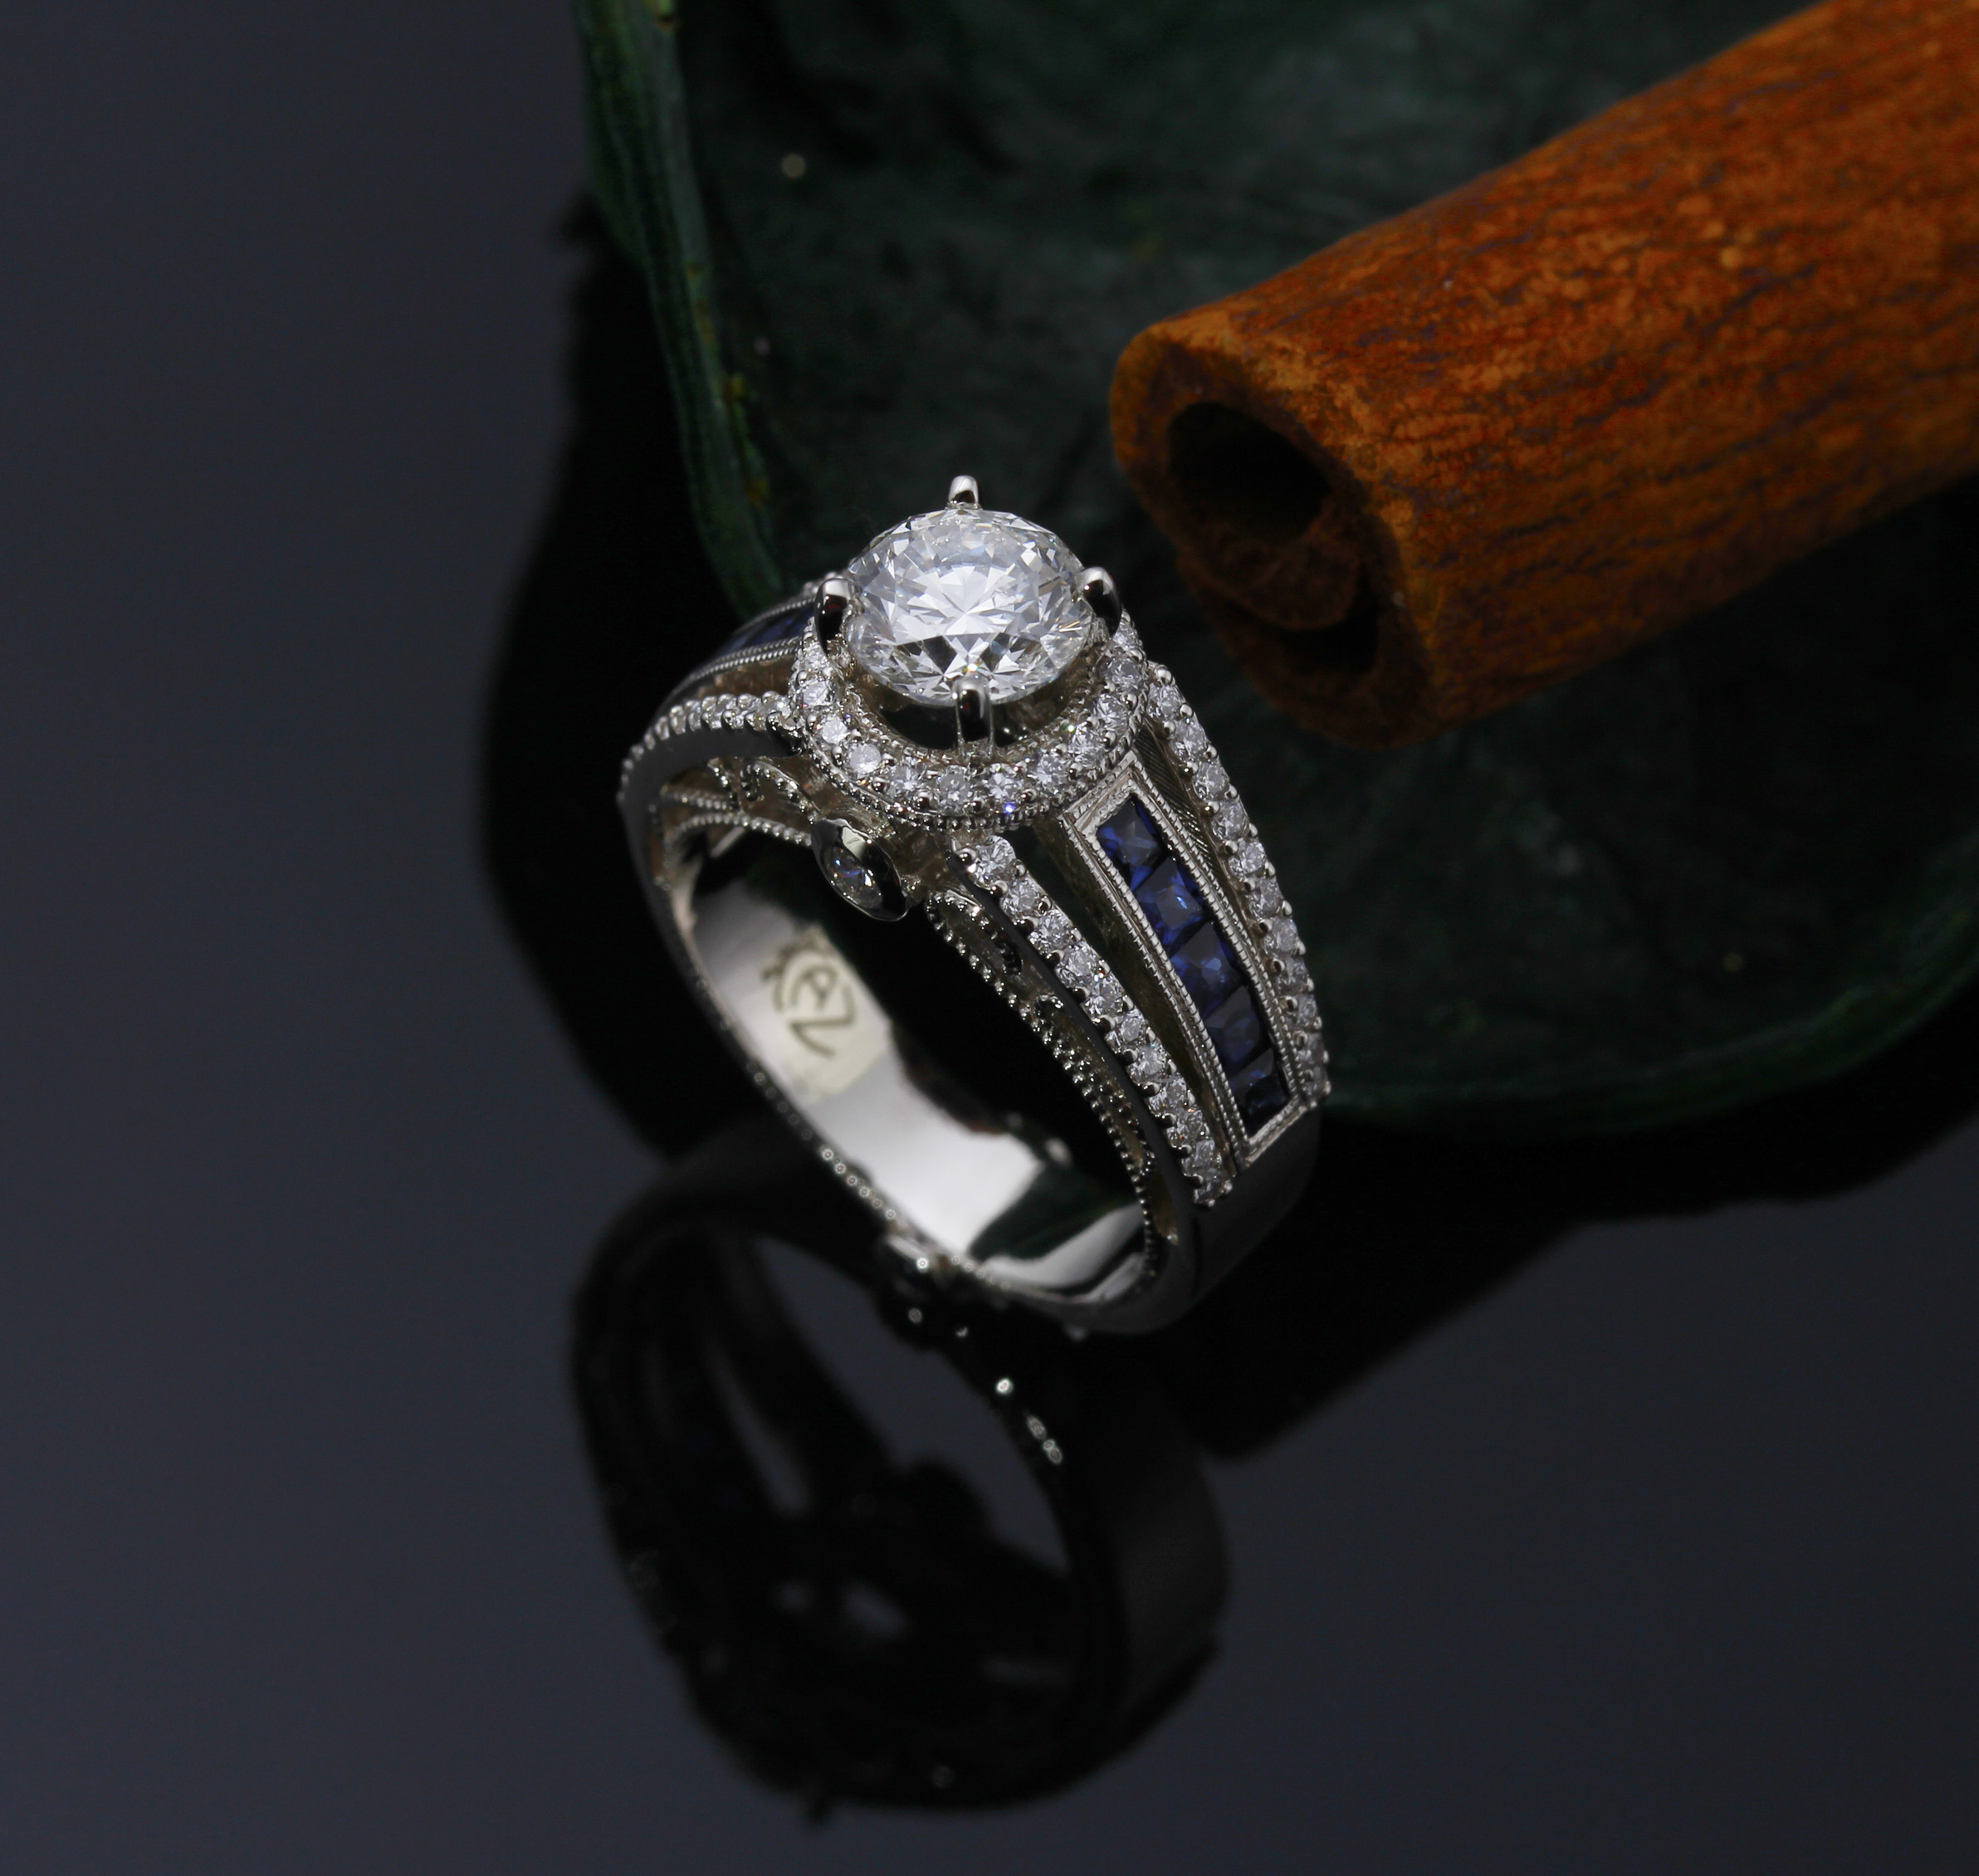 We specialize in Custom Engagement Designs from sketch to finish